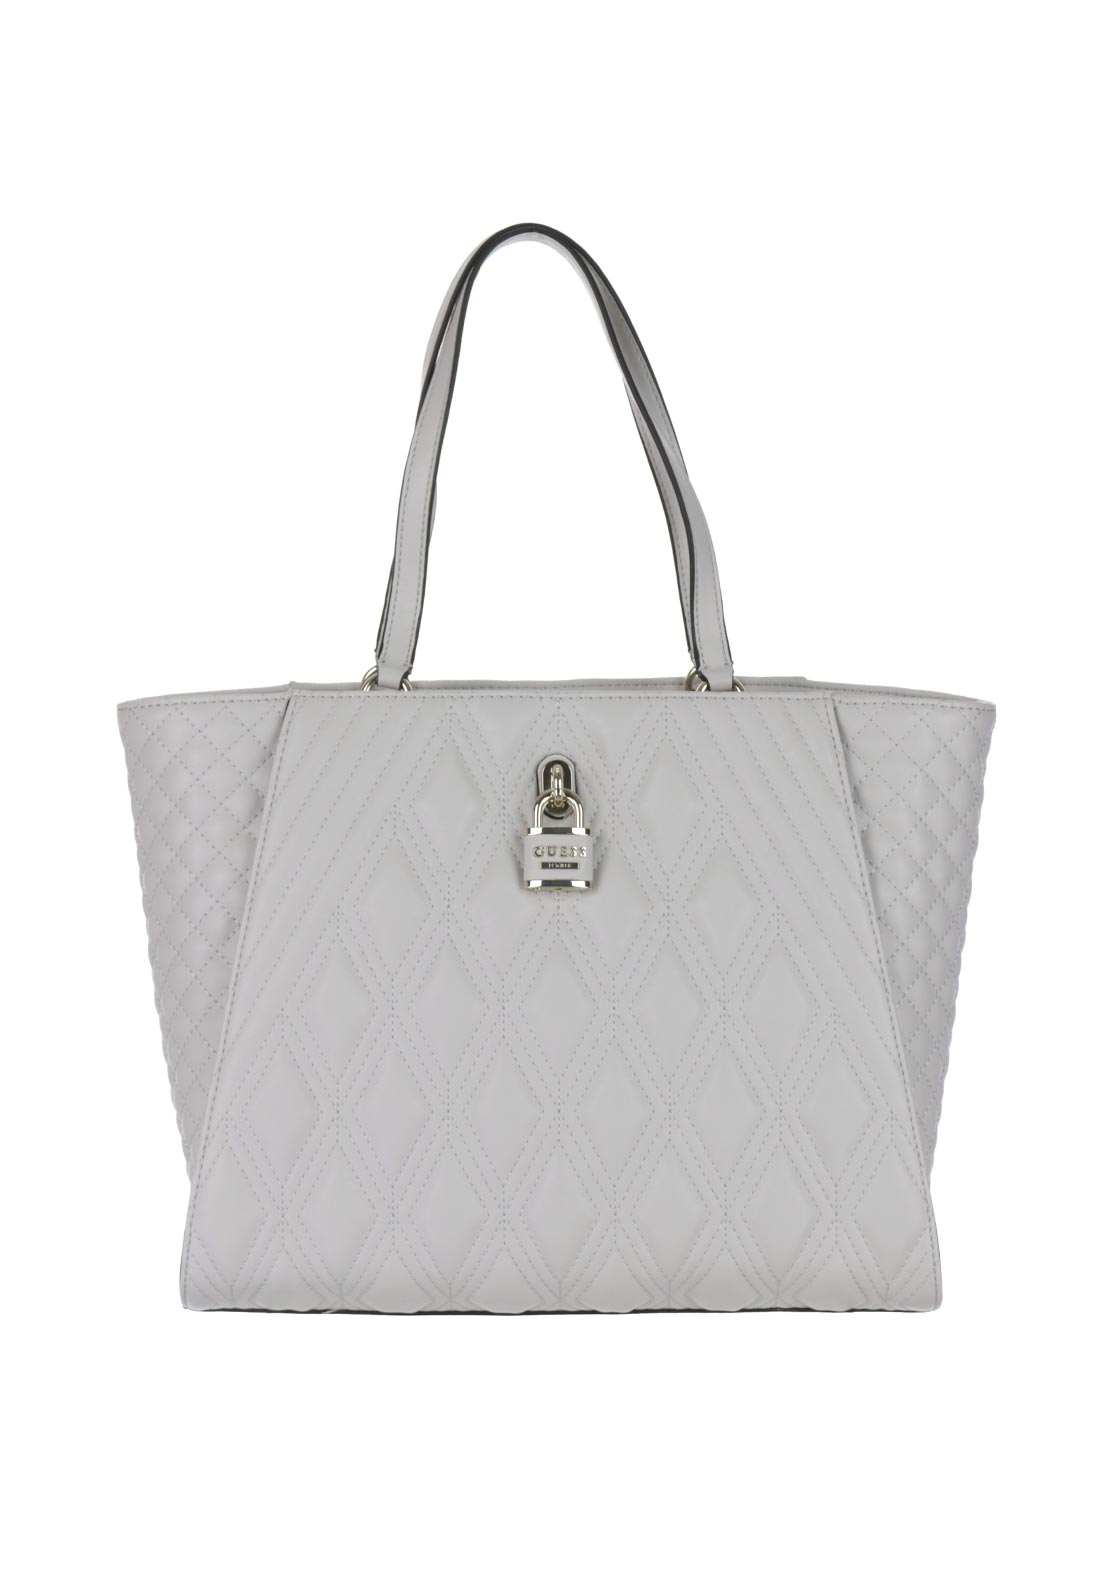 Guess Shea Quilted Locket Shopper Tote Bag, Bone Cream